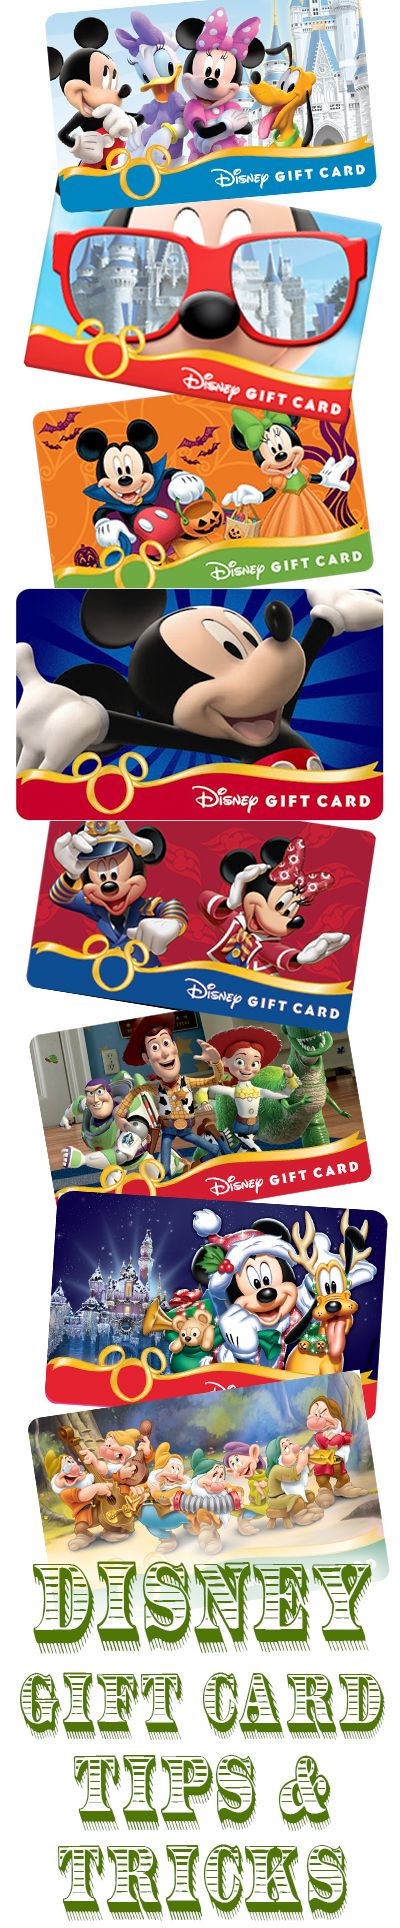 If you're willing to put in the effort, there are a few ways to save money on discount Disney gift cards via Target, Kroger, Sam's Club, and elsewhere. Som